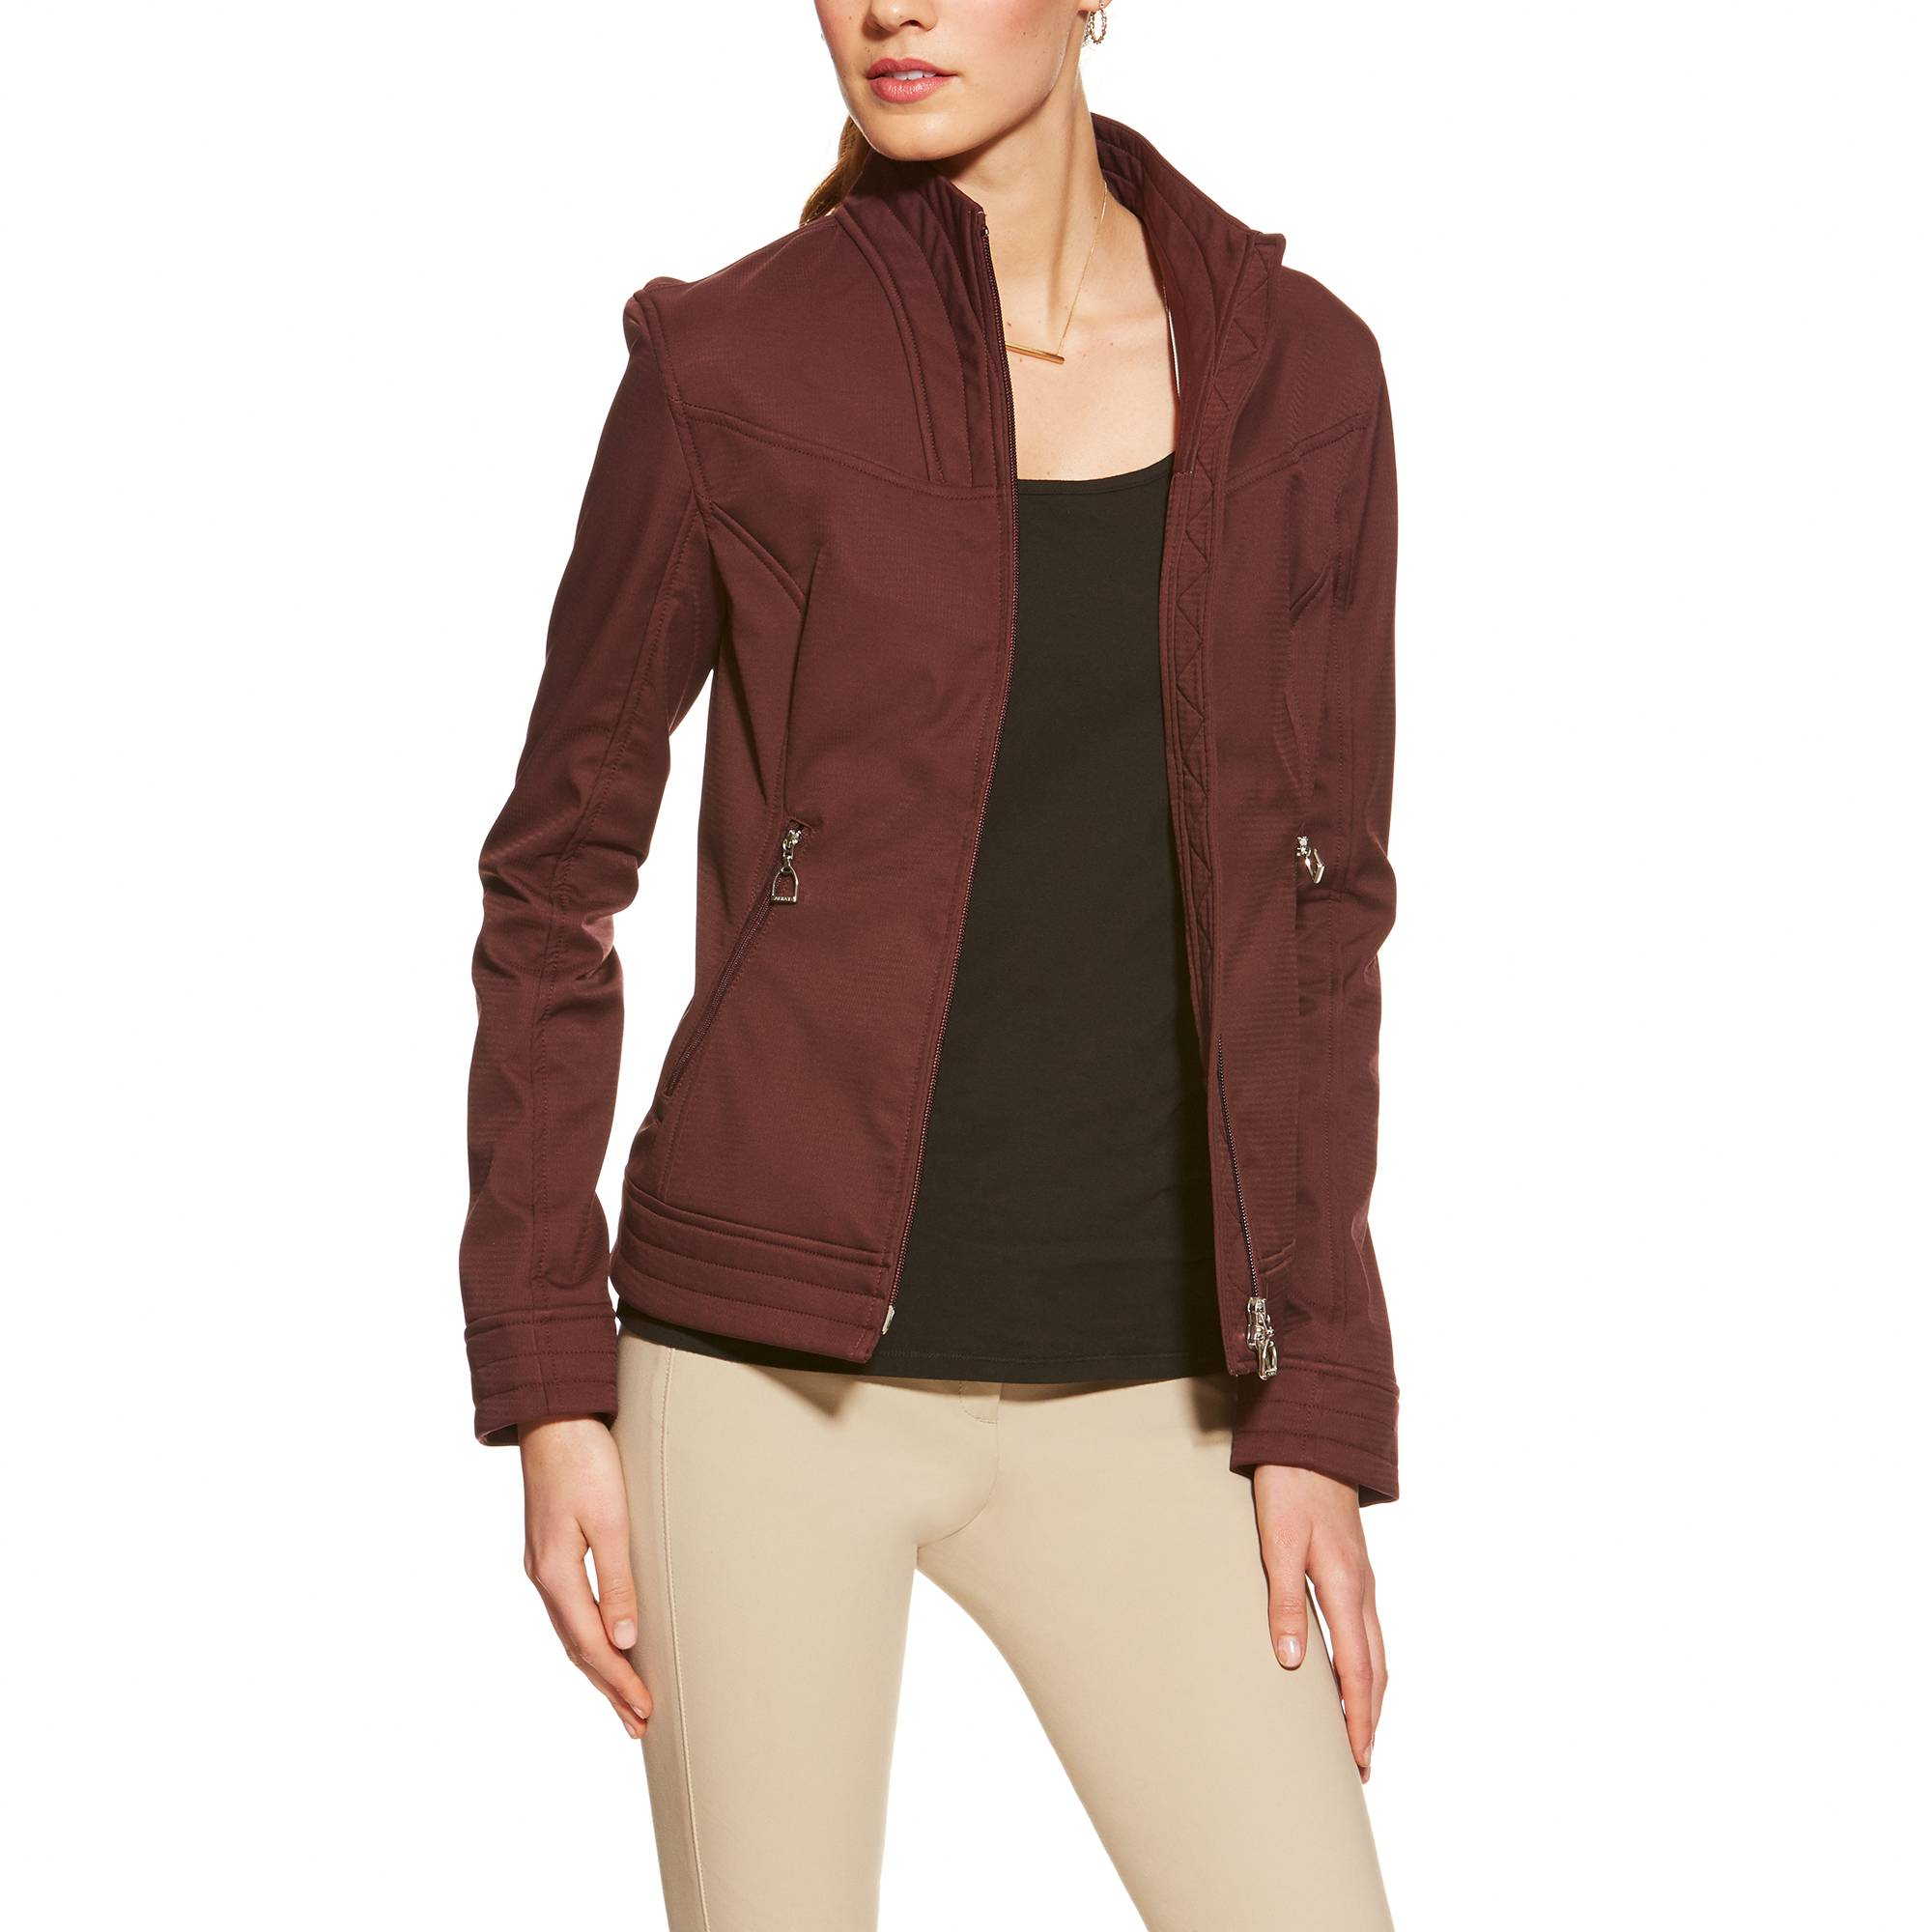 Ariat Revel Softshell Jacket - Ladies - Mulberry